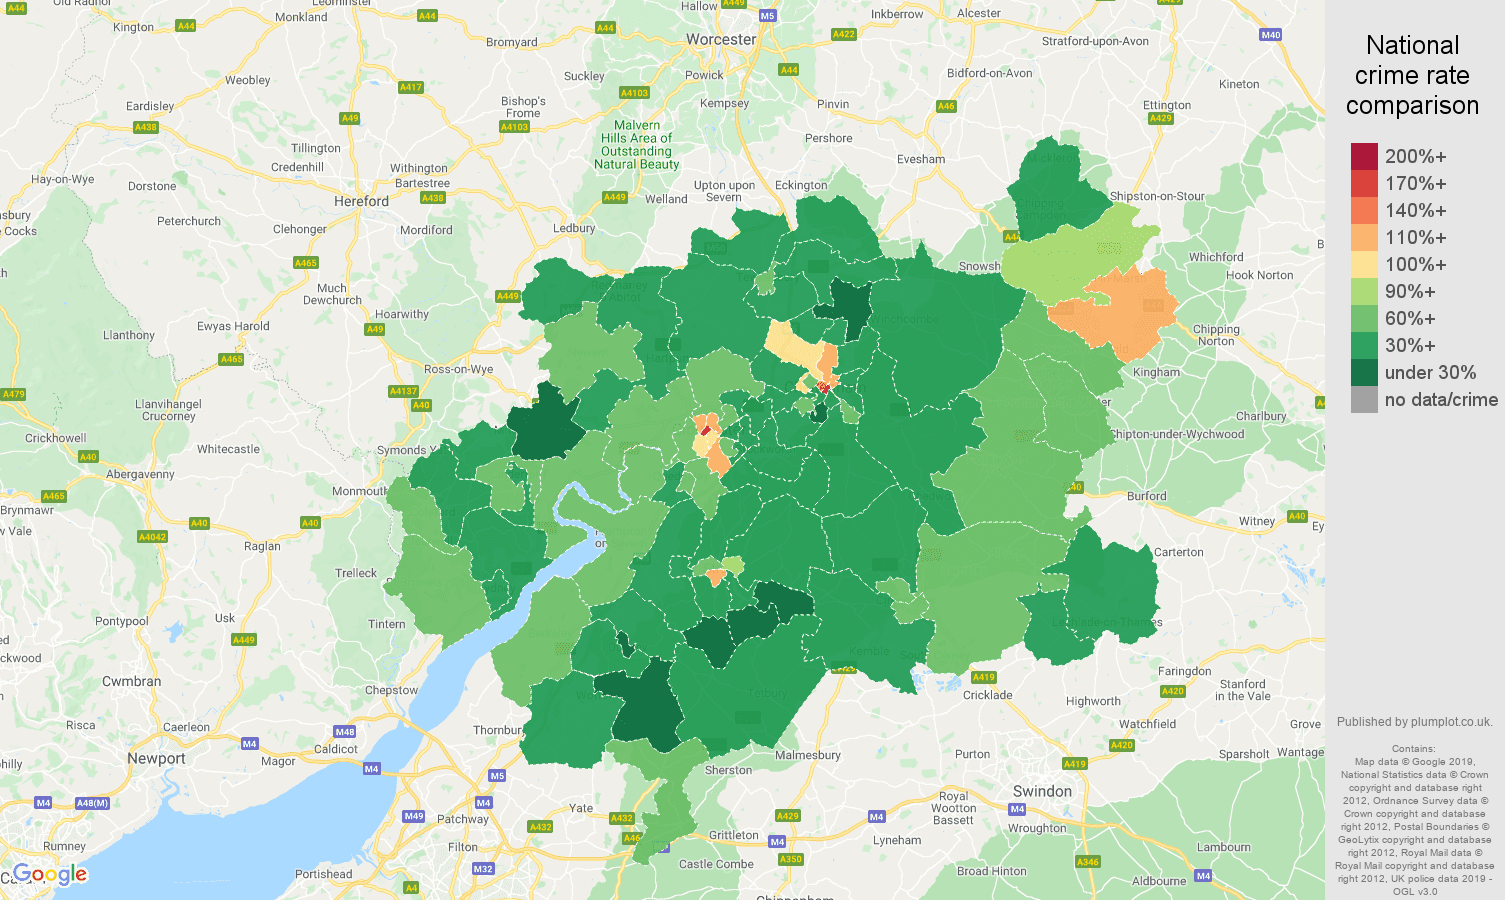 Gloucester other theft crime rate comparison map